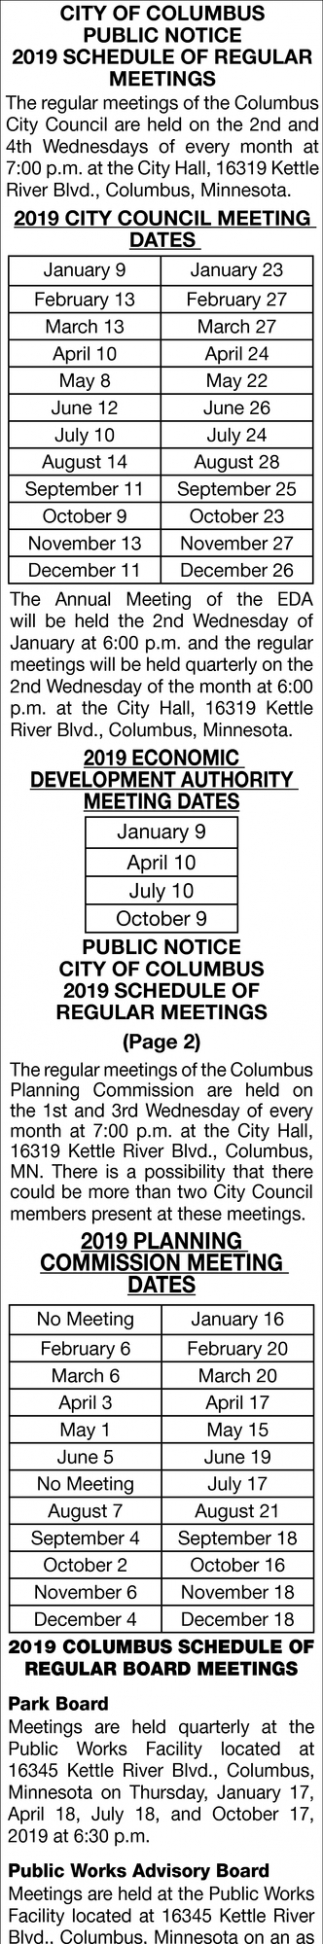 2019 Schedule of Regular Meetings